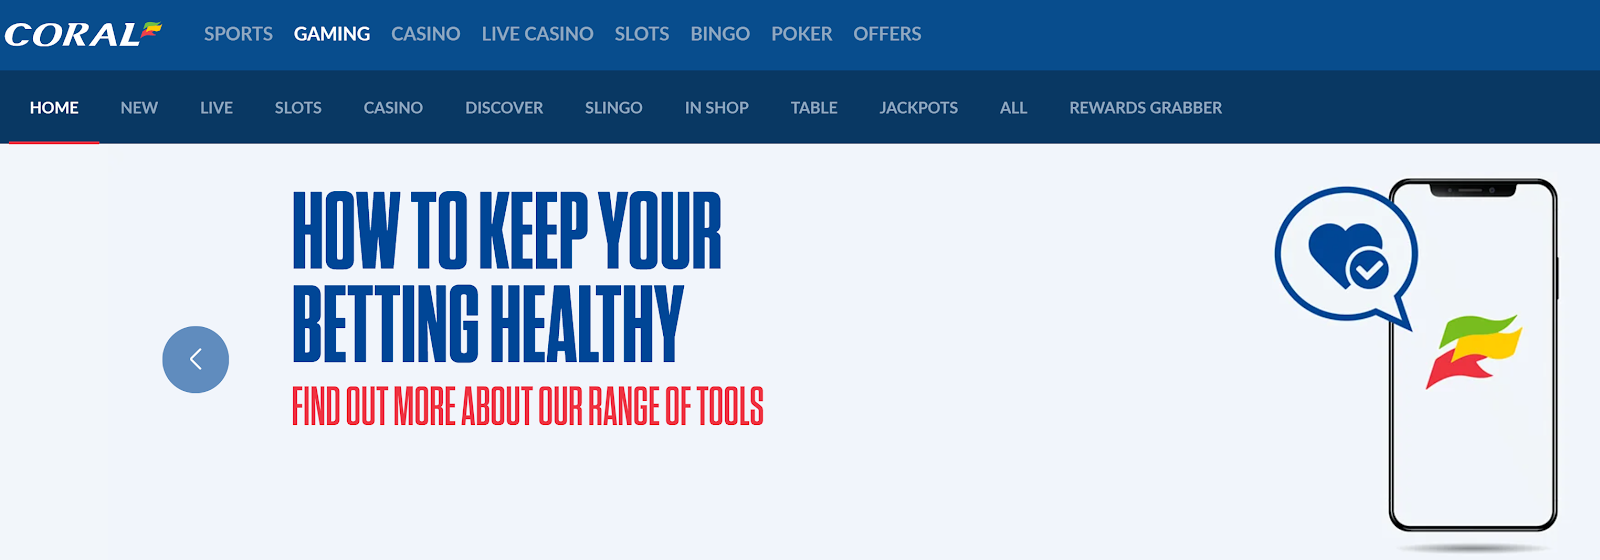 Coral Casino has a range of tools to help keep your betting healthy